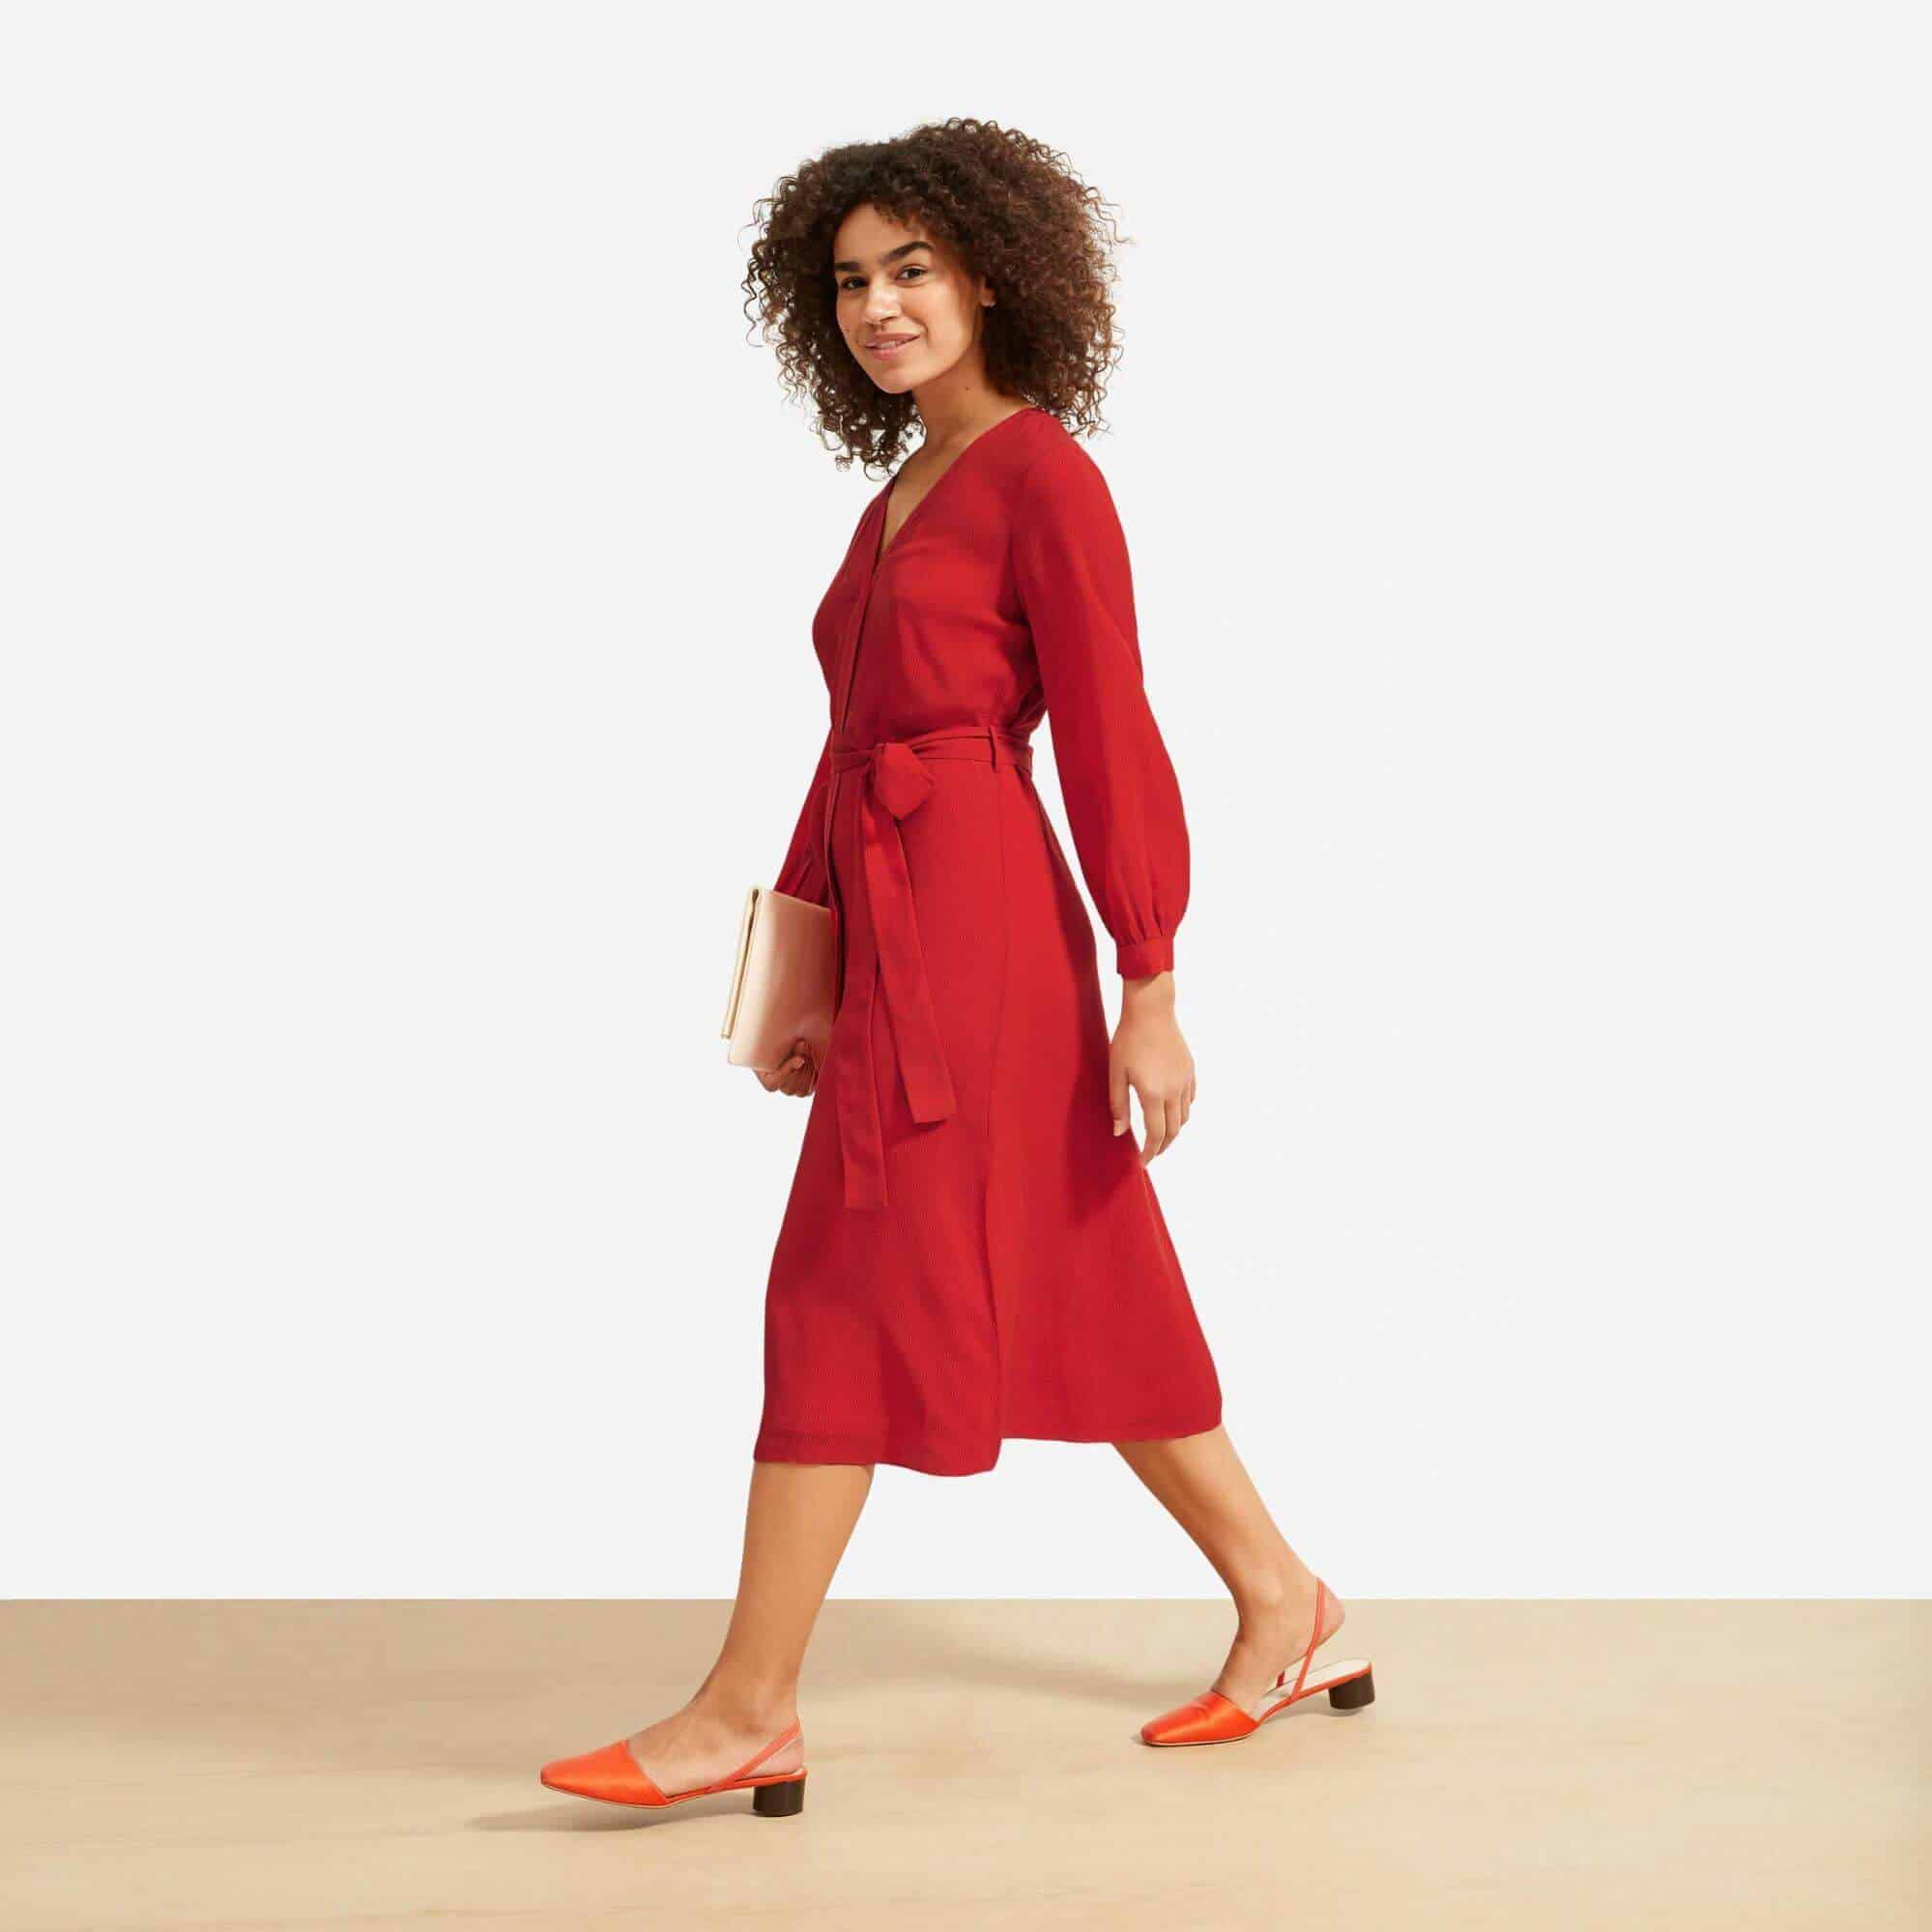 Ethically Made Fair Trade Dresses for Every Eco-cassion Image by Everlane #sustainablefashion #fairtrade #ethicallymade